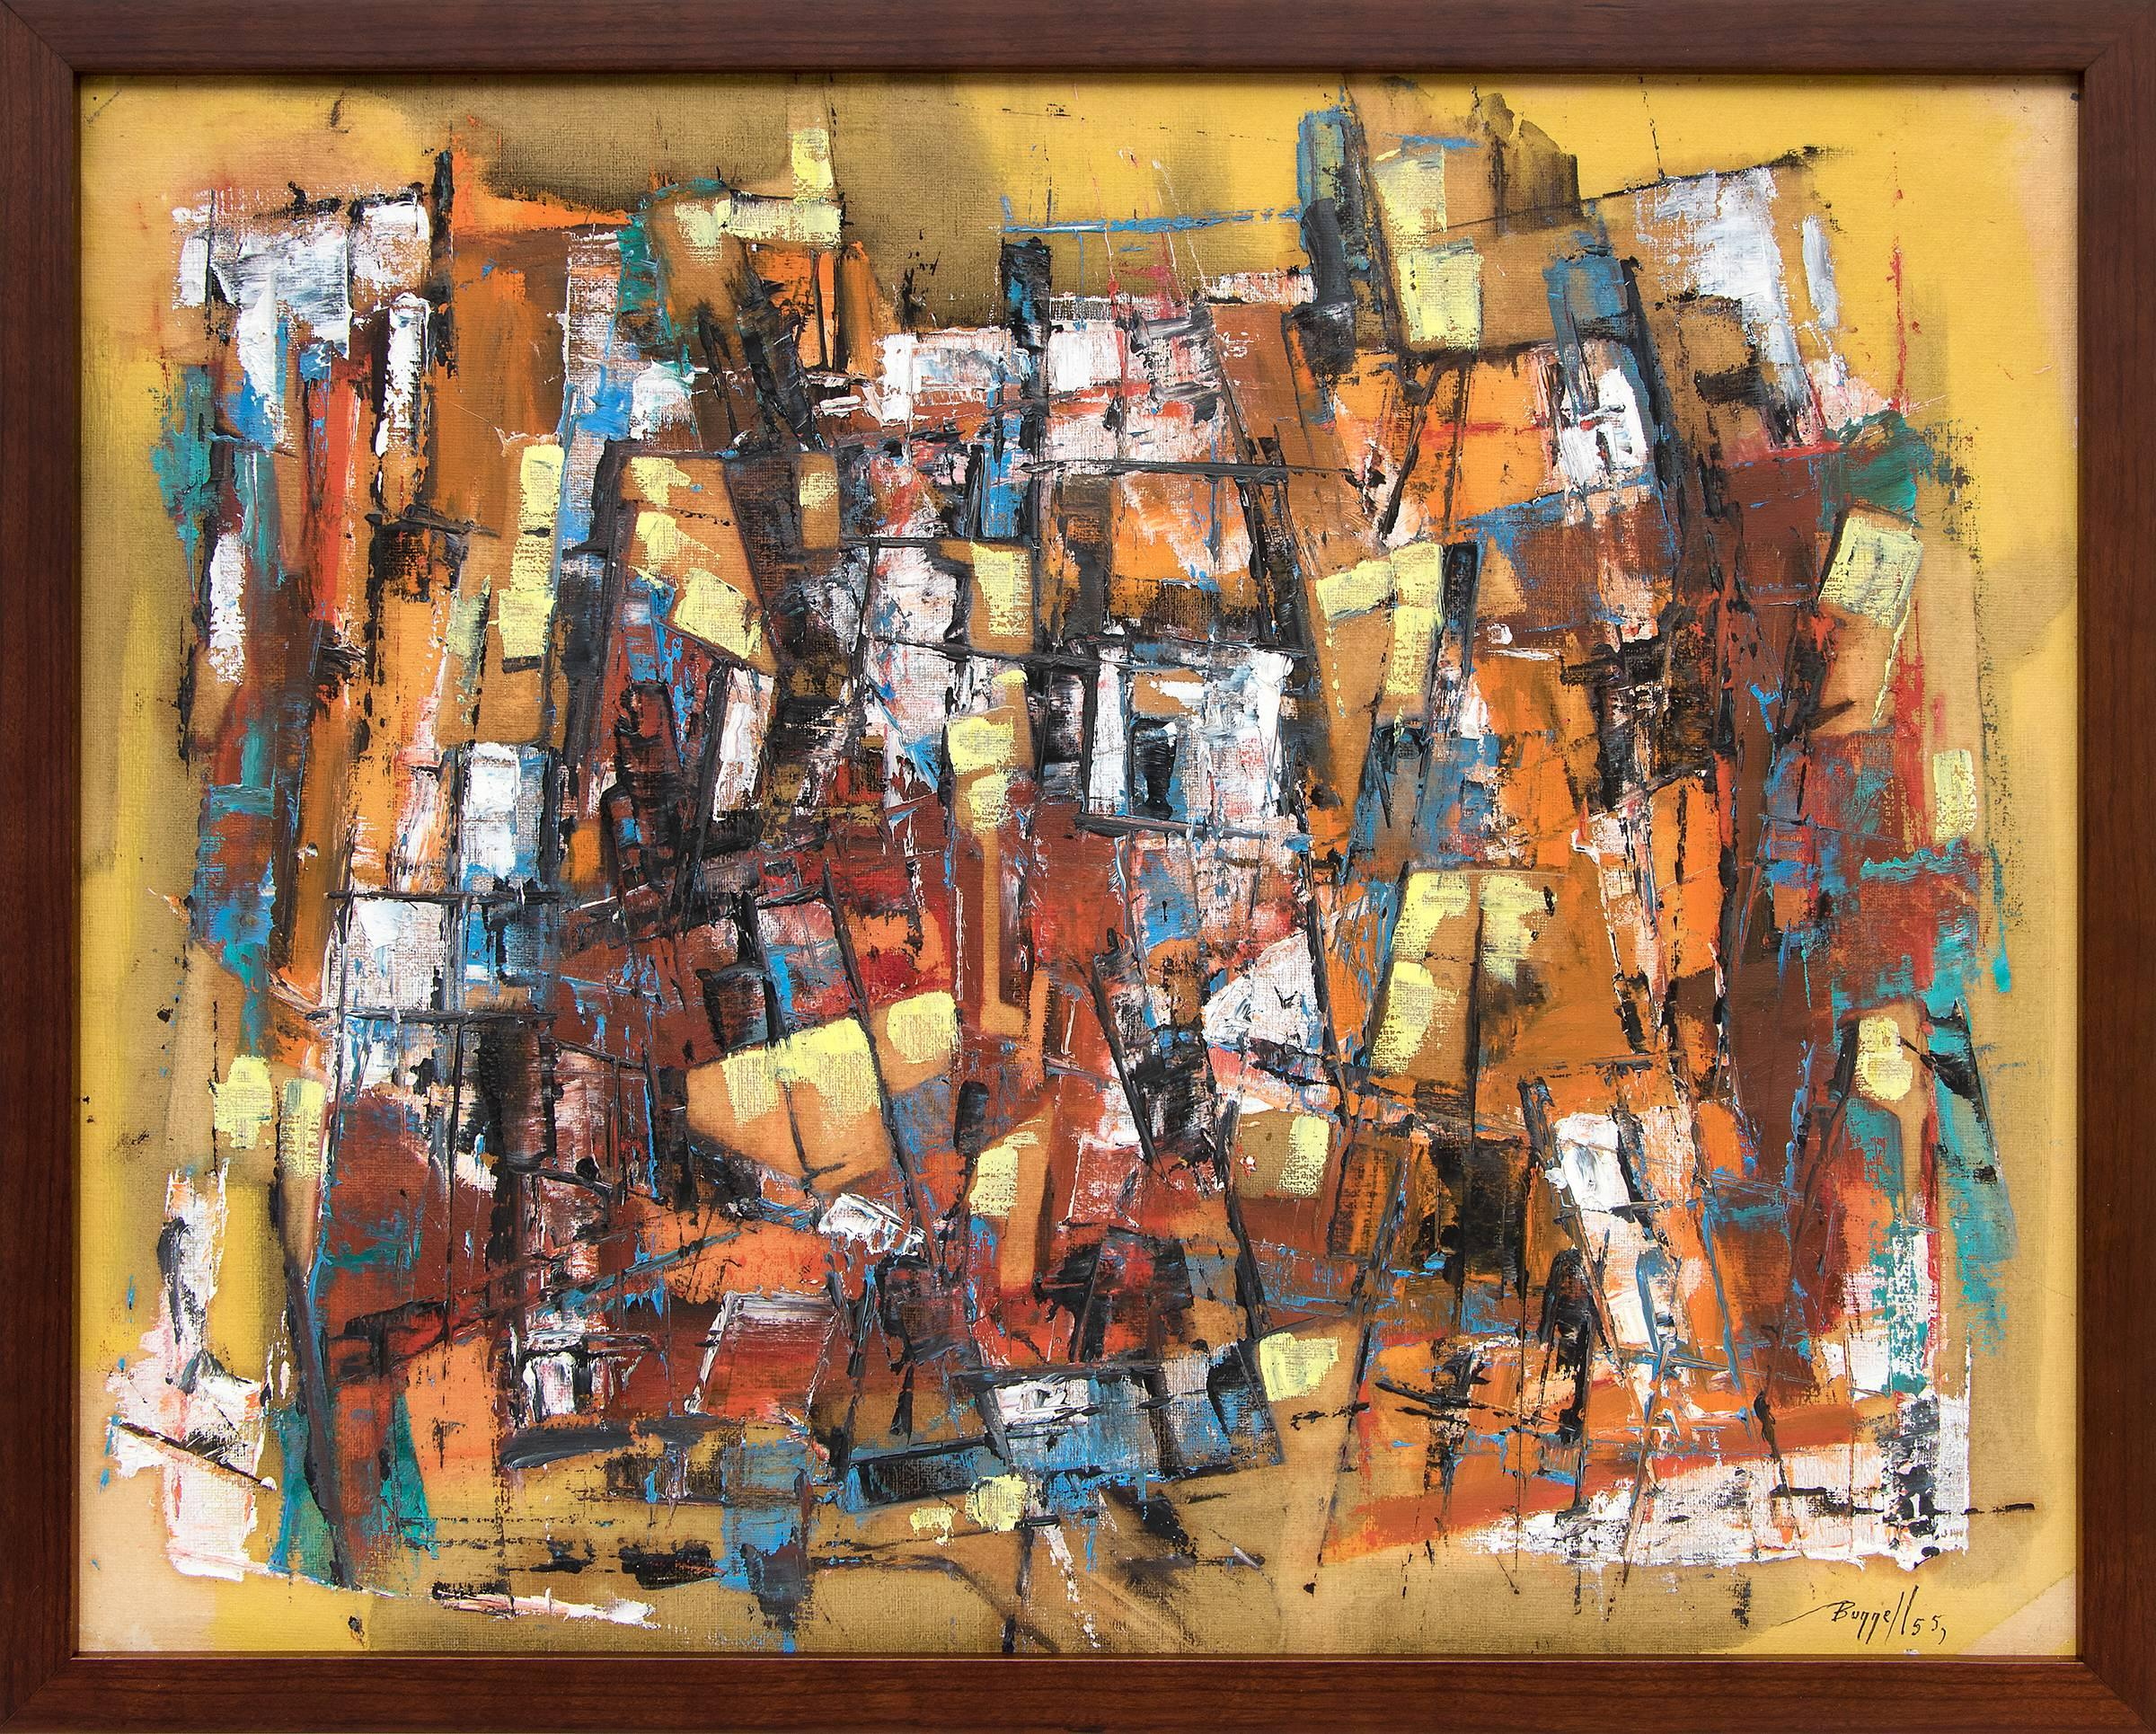 Untitled (Abstract Expressionist Painting: Yellow/Gold, Red/Brown, Orange, Blue)